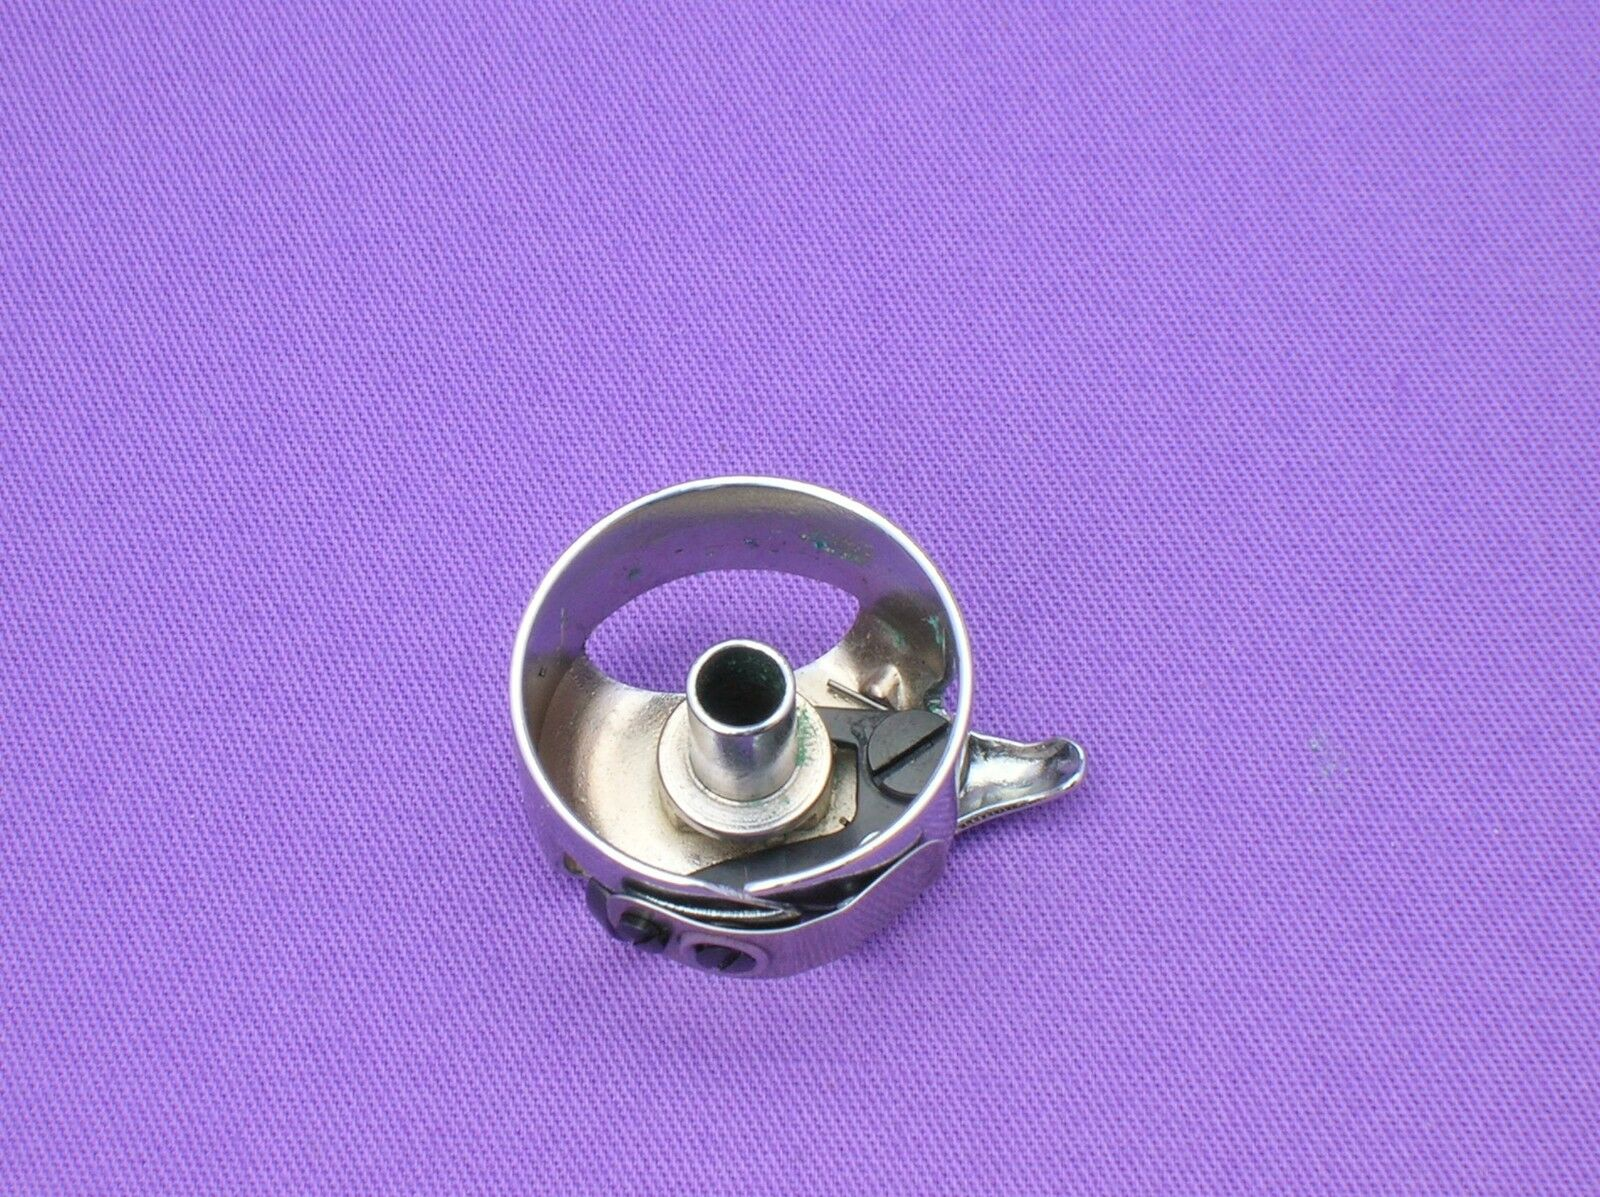 BOBBIN CASE TO FIT HUSQVARNA VIKING SEWING MACHINES #4011530 100,950,3320,6460